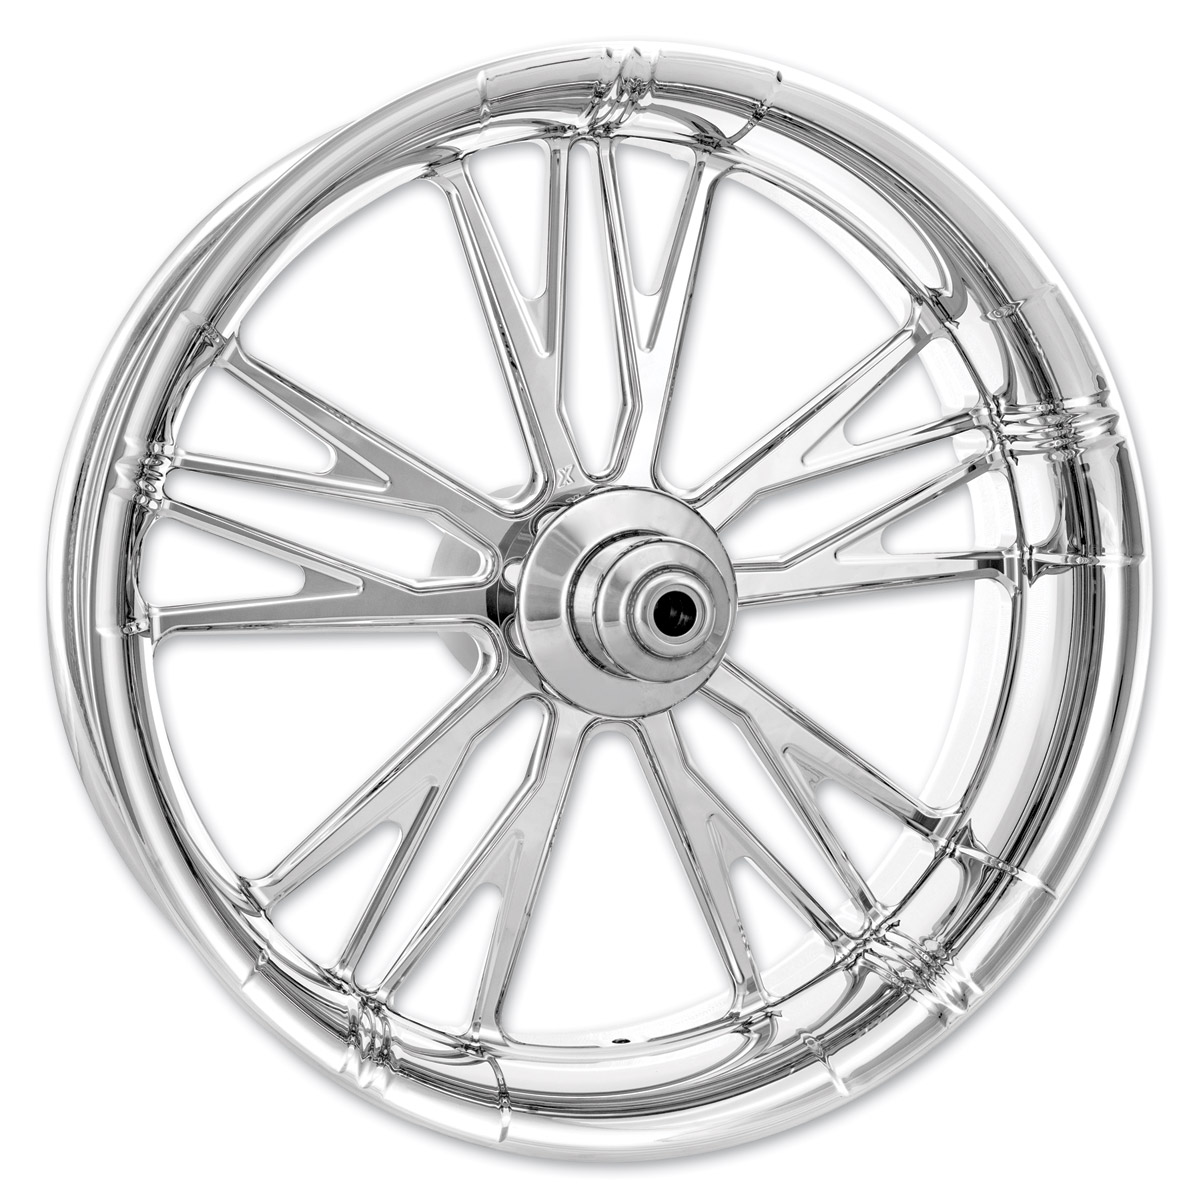 Xtreme Machine Chrome Forged Execute Front Wheel 23 X 3